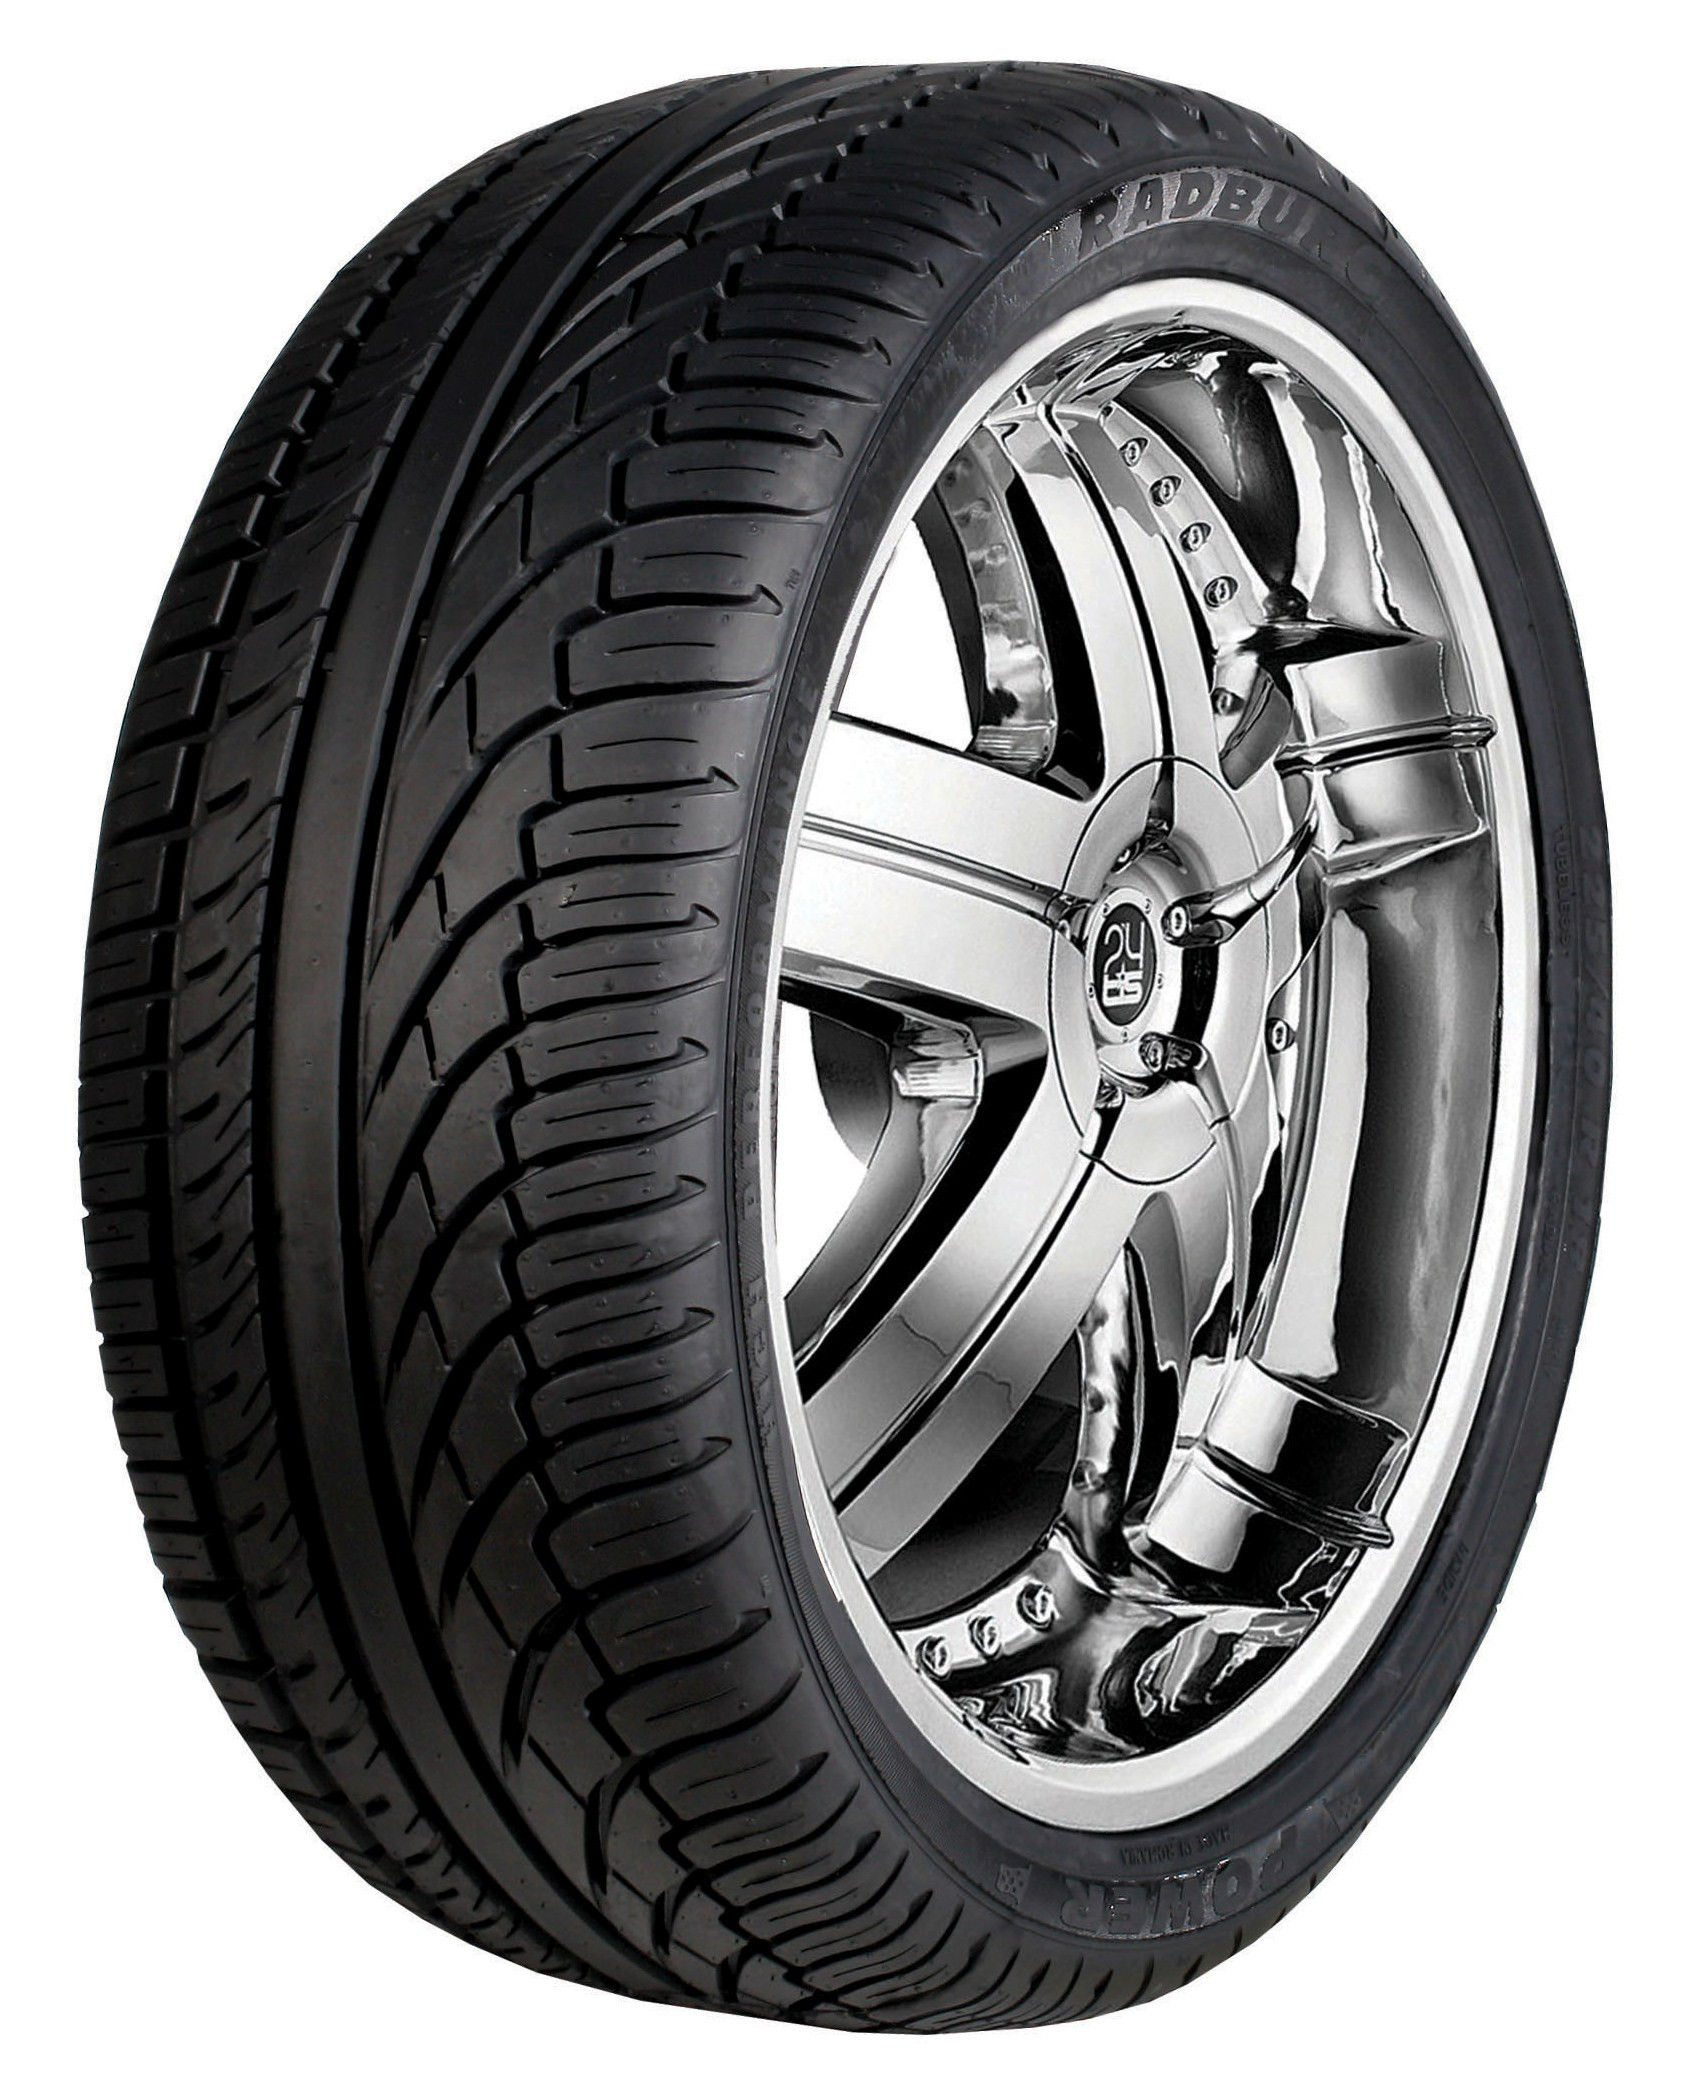 Anvelopa Vara 185/65R15 88T International Tyres Power Reconstruite